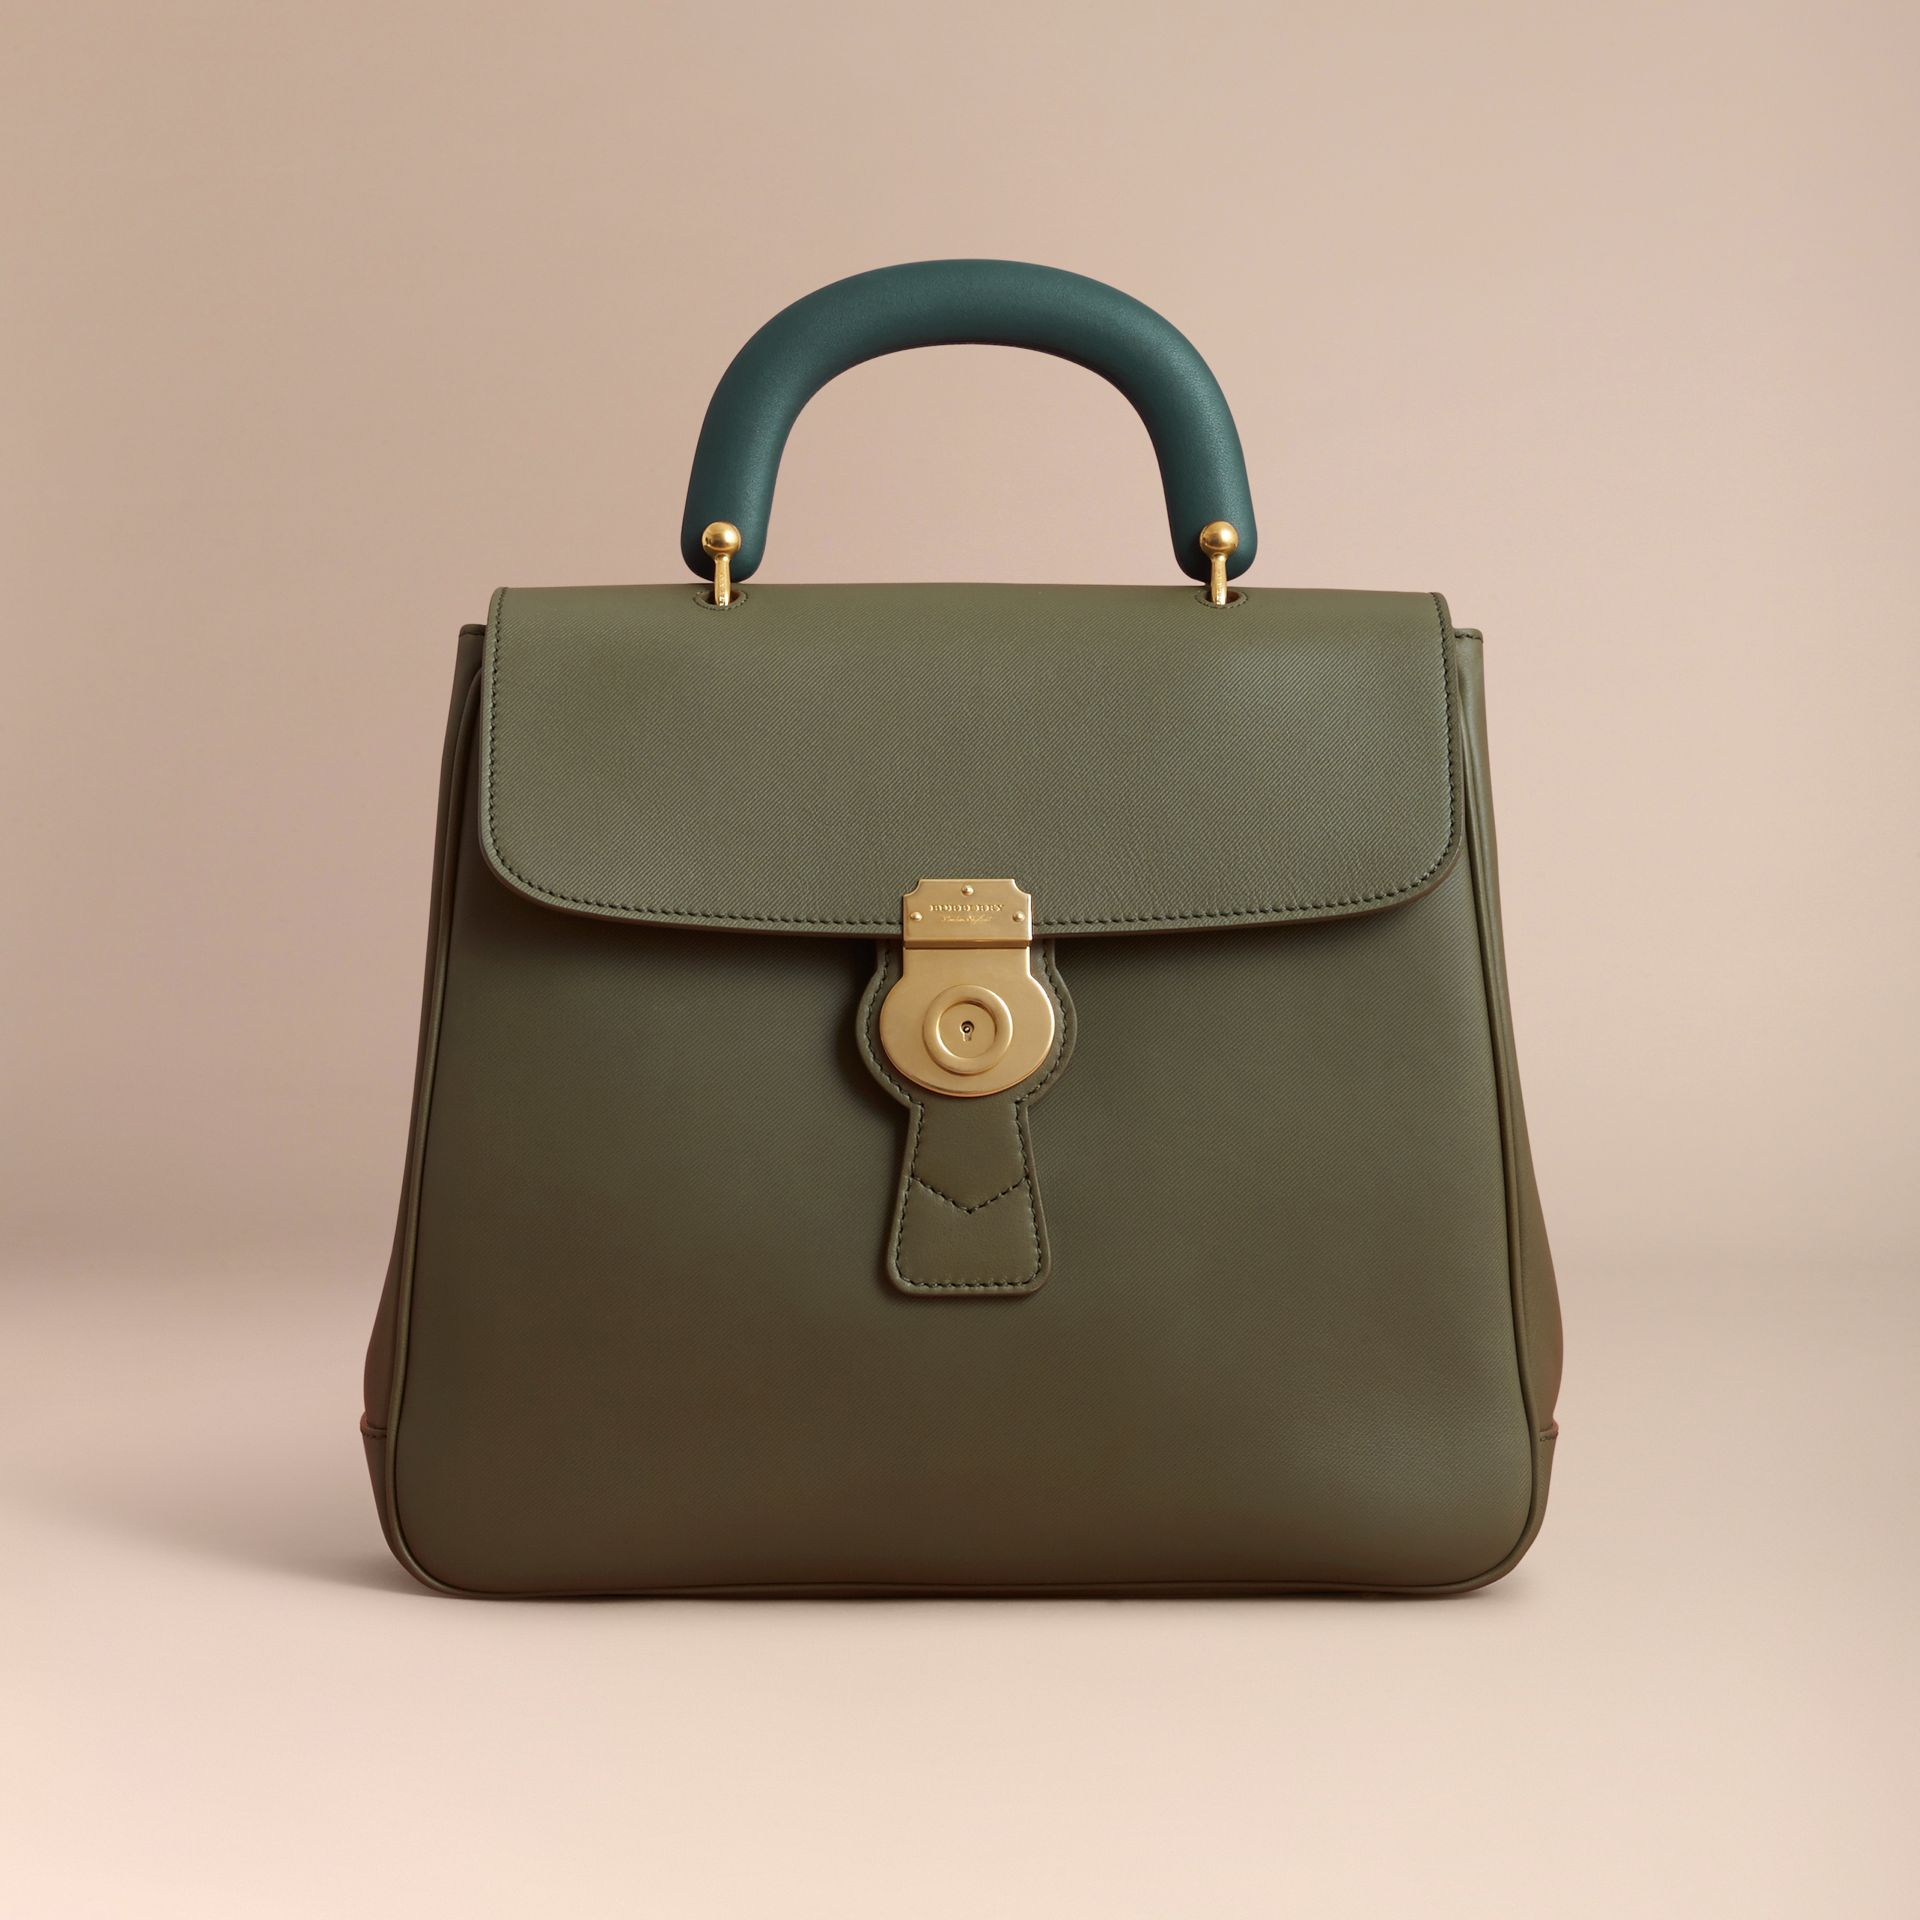 The Large DK88 Top Handle Bag in Moss Green - Women | Burberry United States - gallery image 6